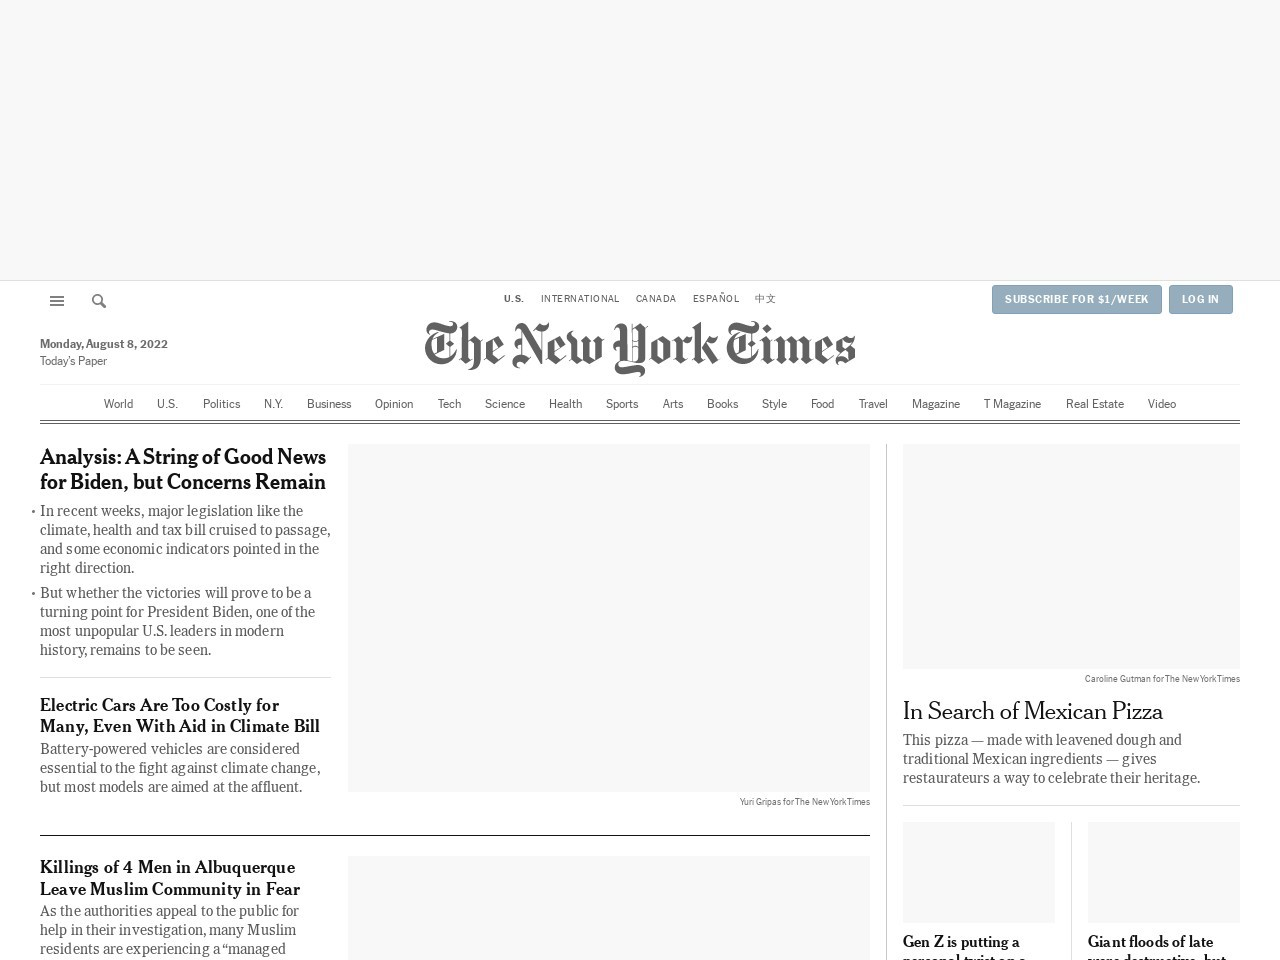 Privacy on the Internet – The New York Times